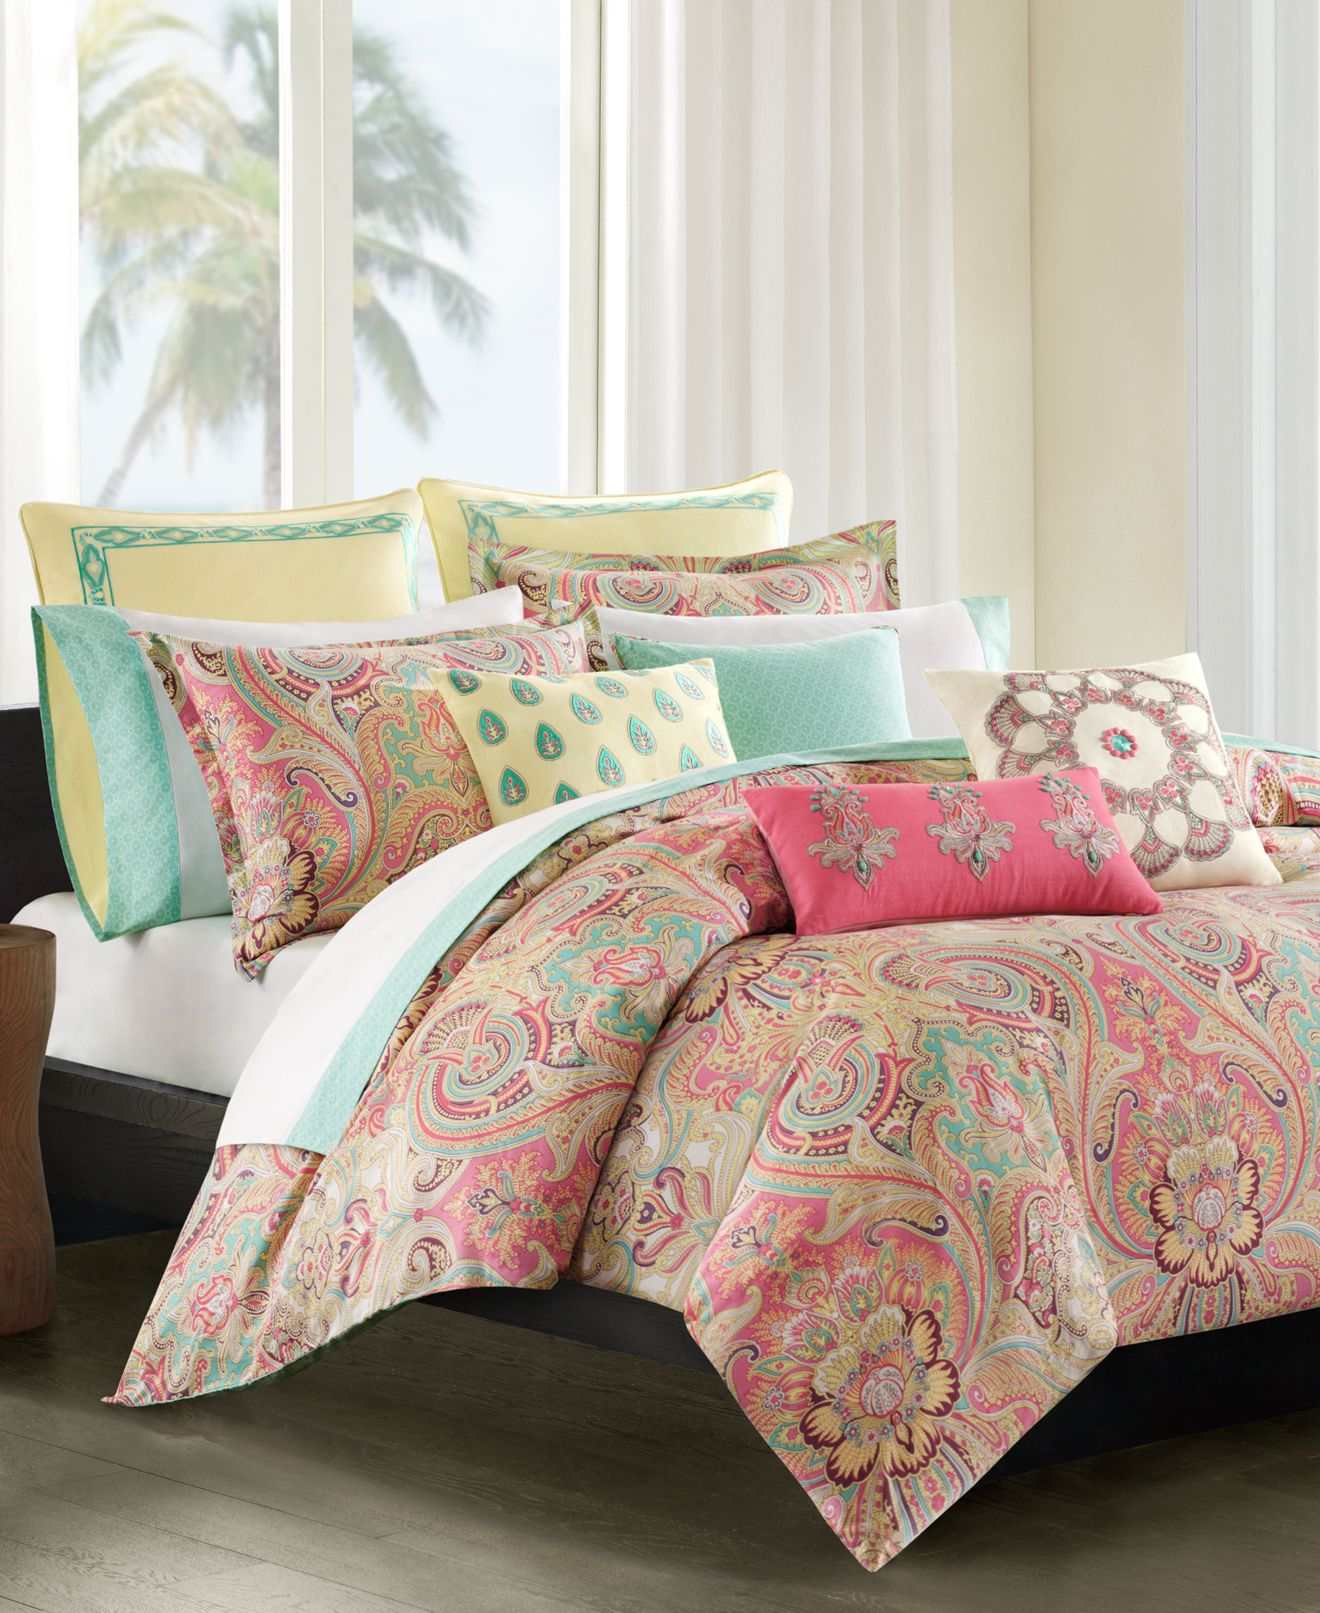 echo guinevere comforter sets - bedding collections - bed & bath